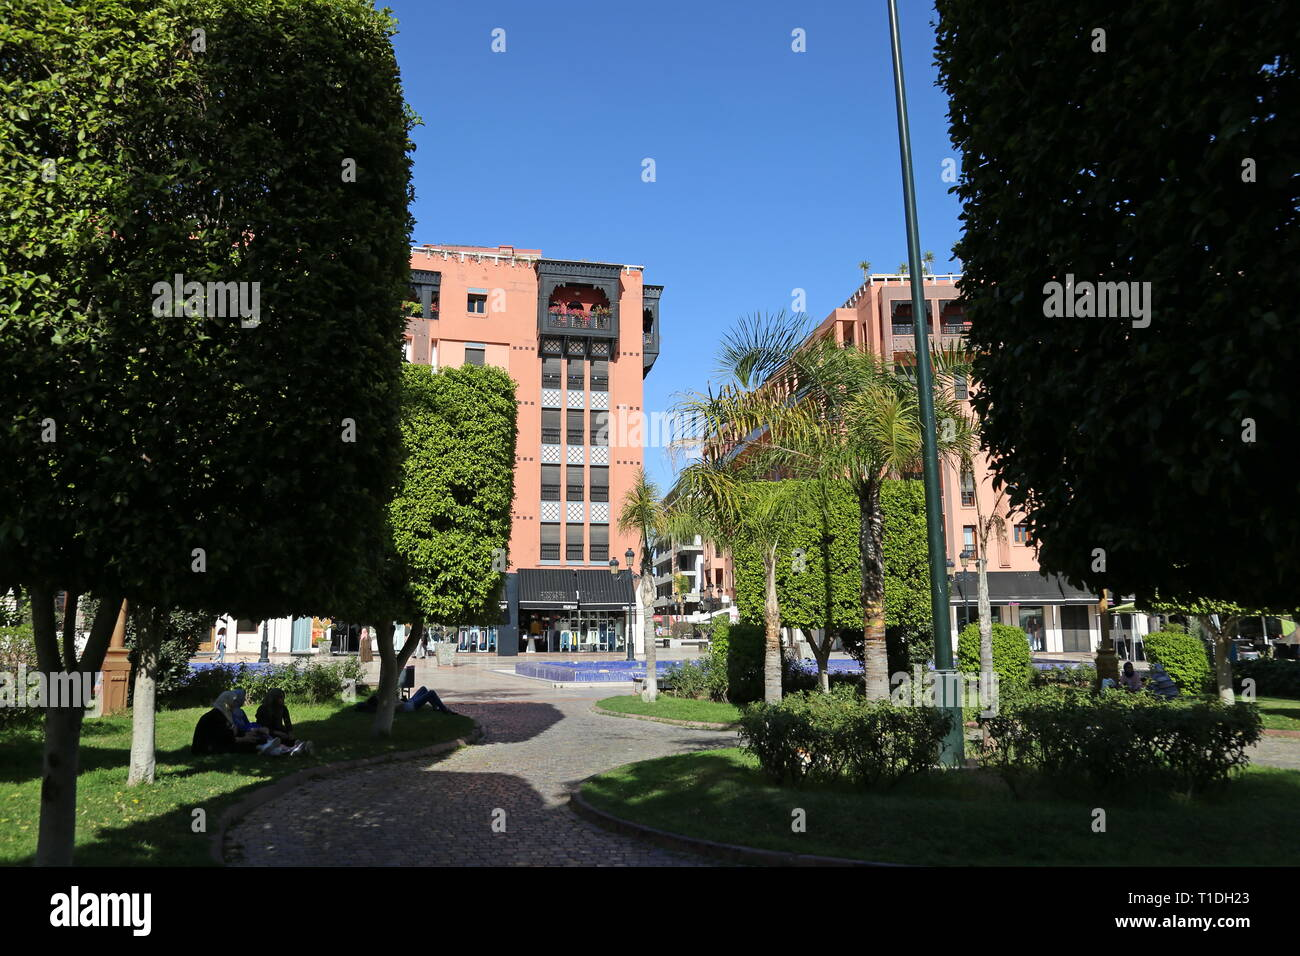 Shopping plaza at Place du 16 Novembre, New City, Marrakesh, Marrakesh-Safi region, Morocco, north Africa - Stock Image